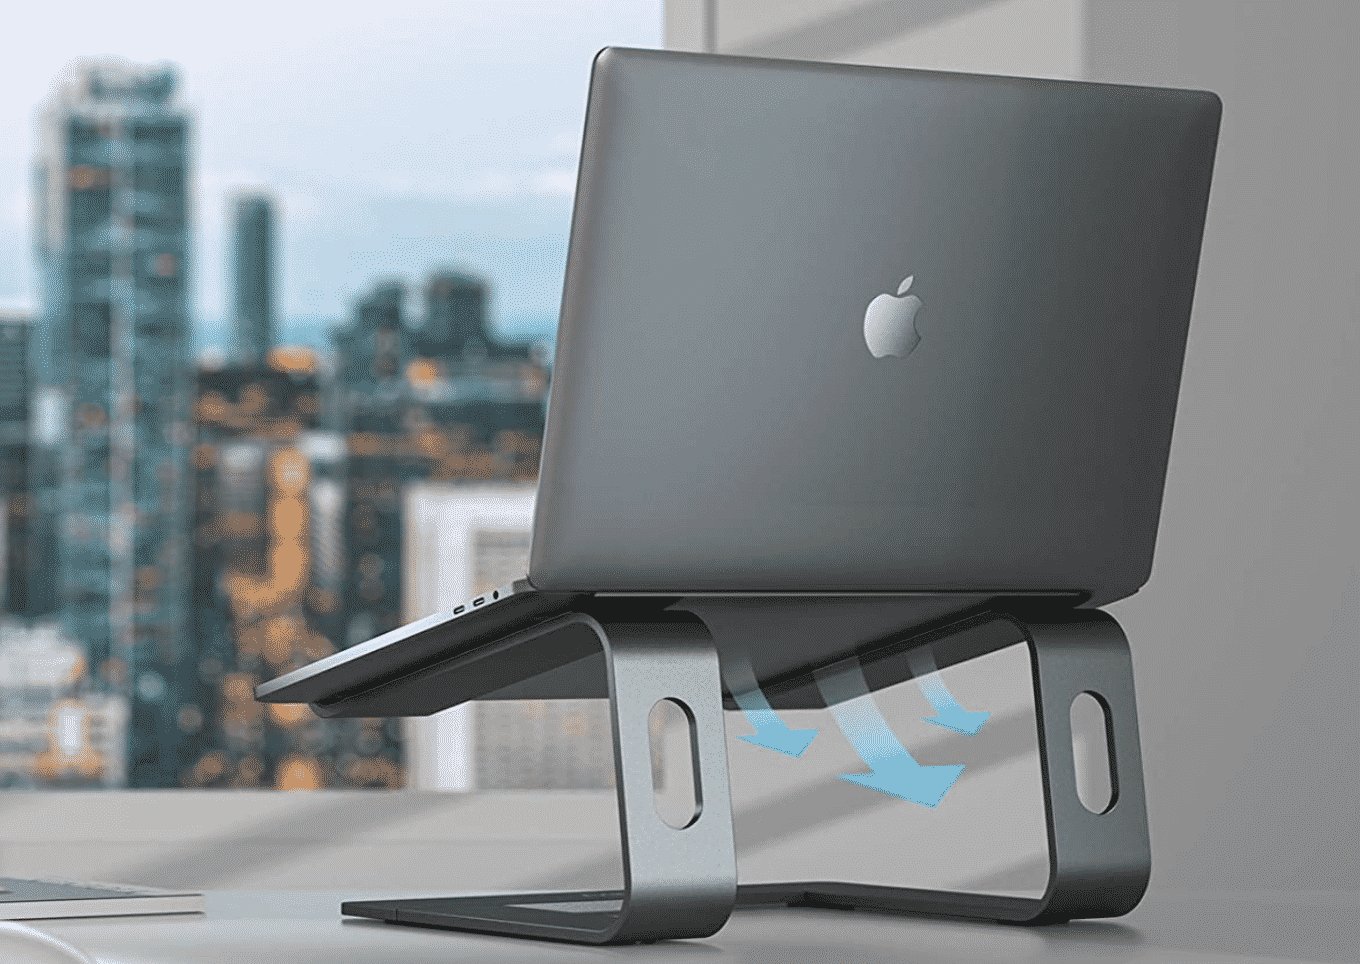 Prop Up Your MacBook Ergonomically with the Nulaxy C3 Aluminum Stand, Now $5 Less